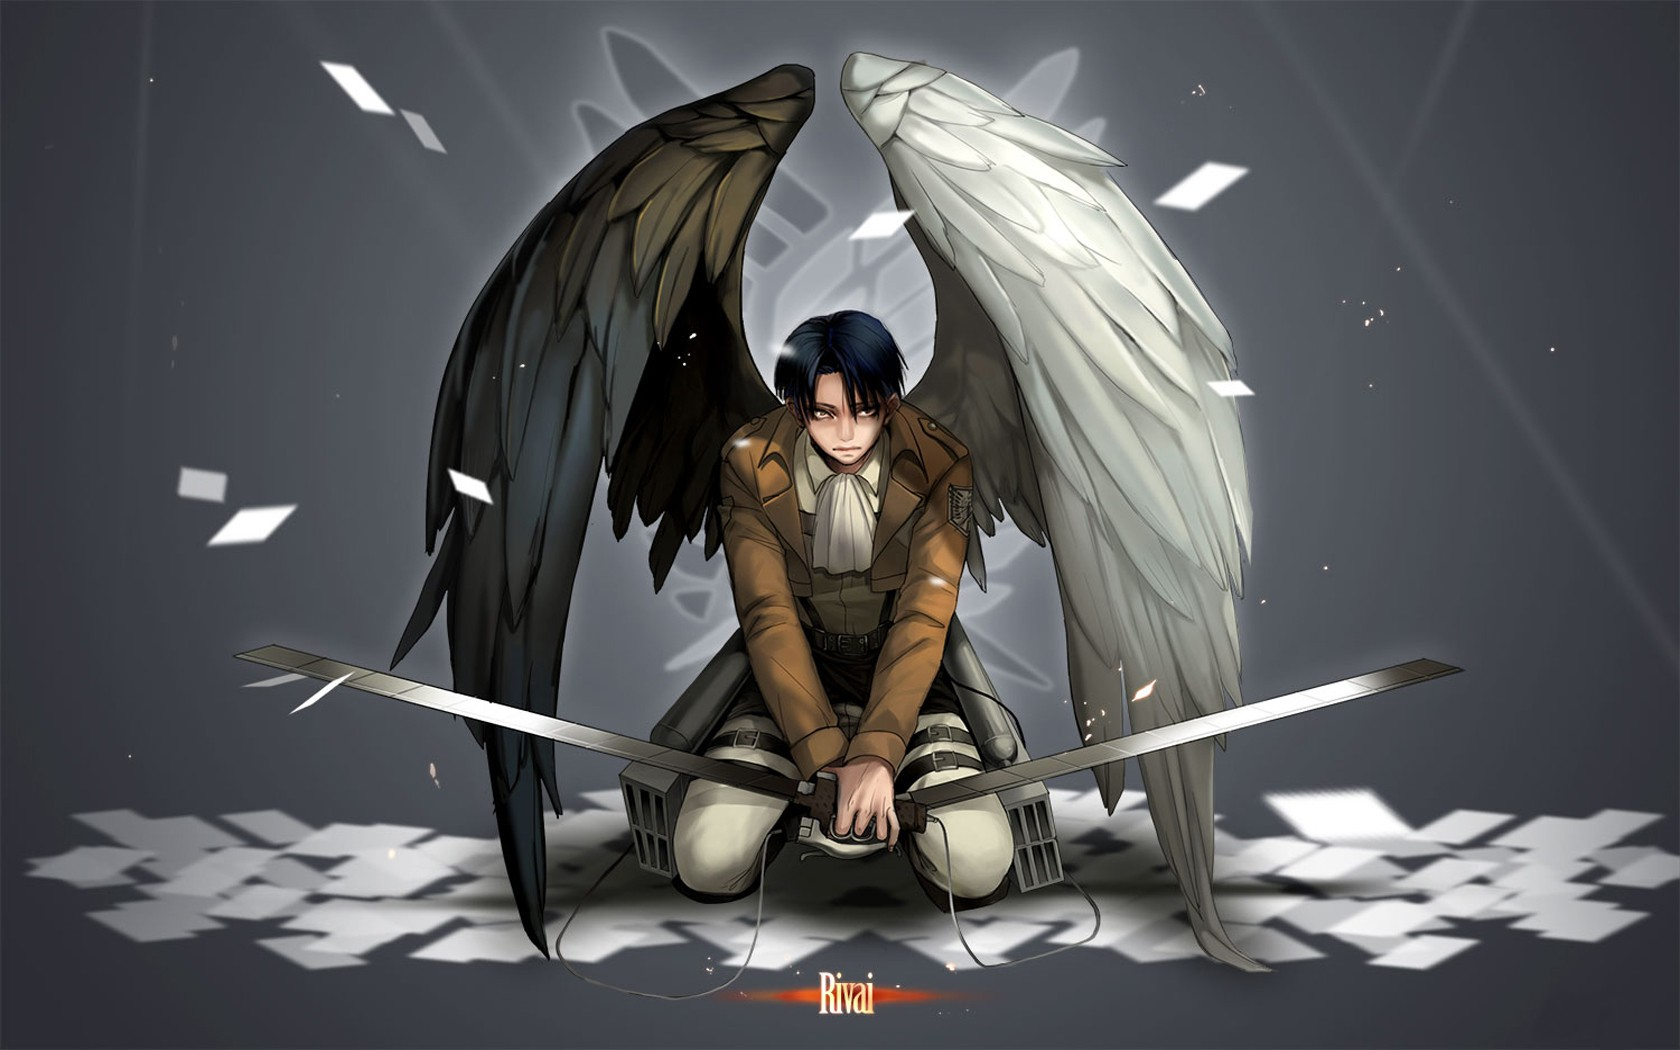 Levi Angel Wings Attack On Titan Wallpaper Download Attack On Titan Levi 22154 Hd Wallpaper Backgrounds Download